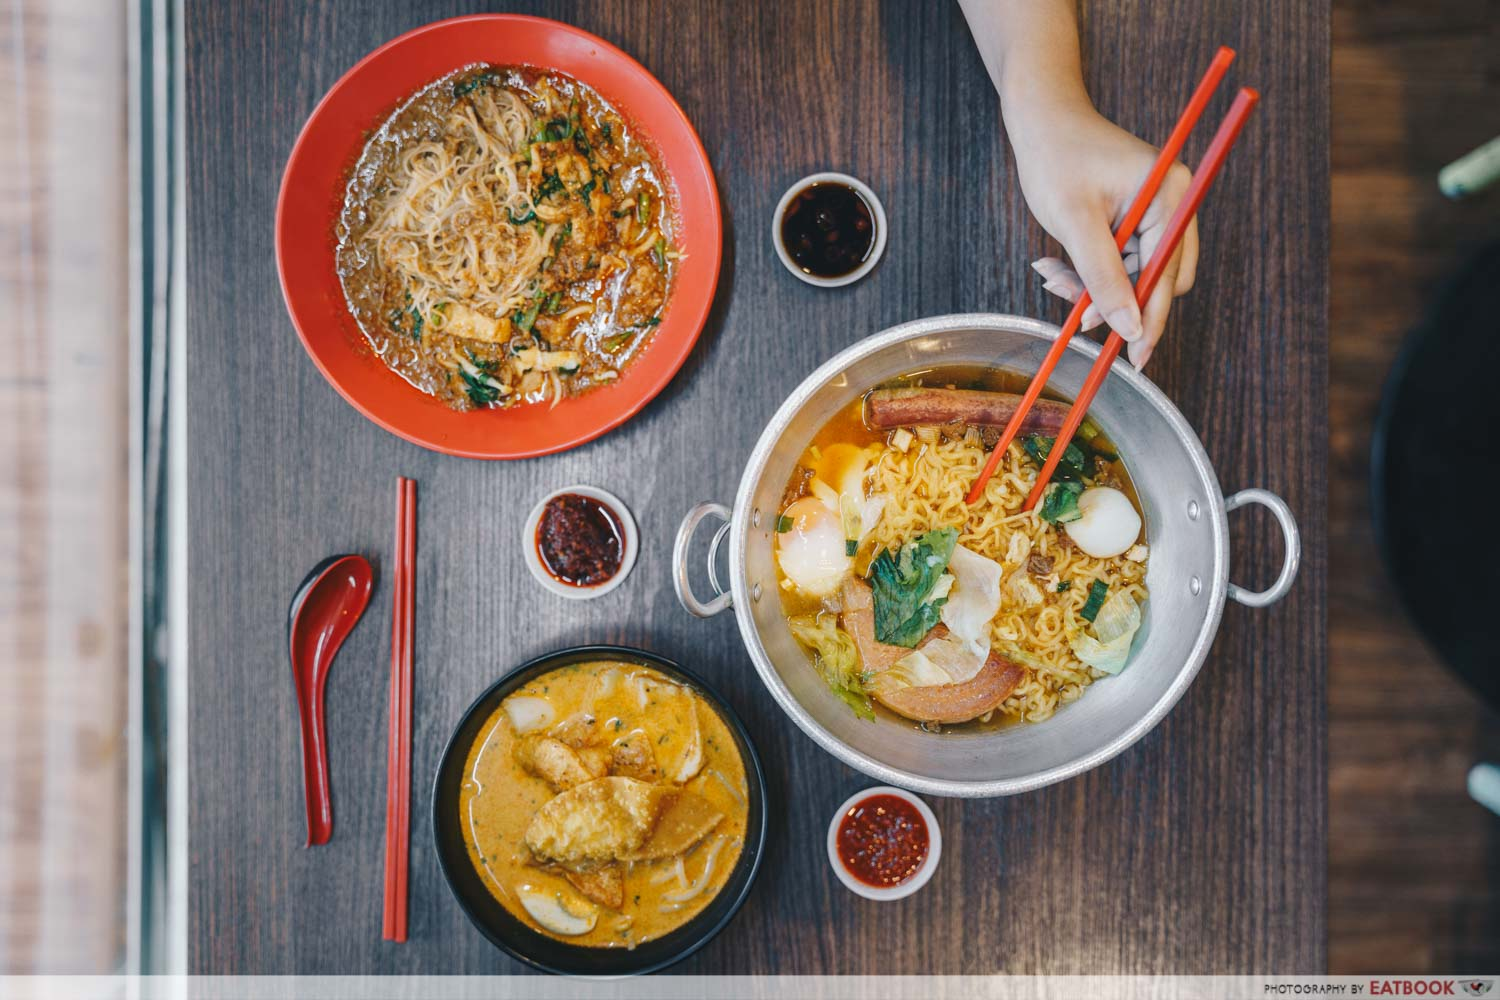 The Noodle House - Flatlay